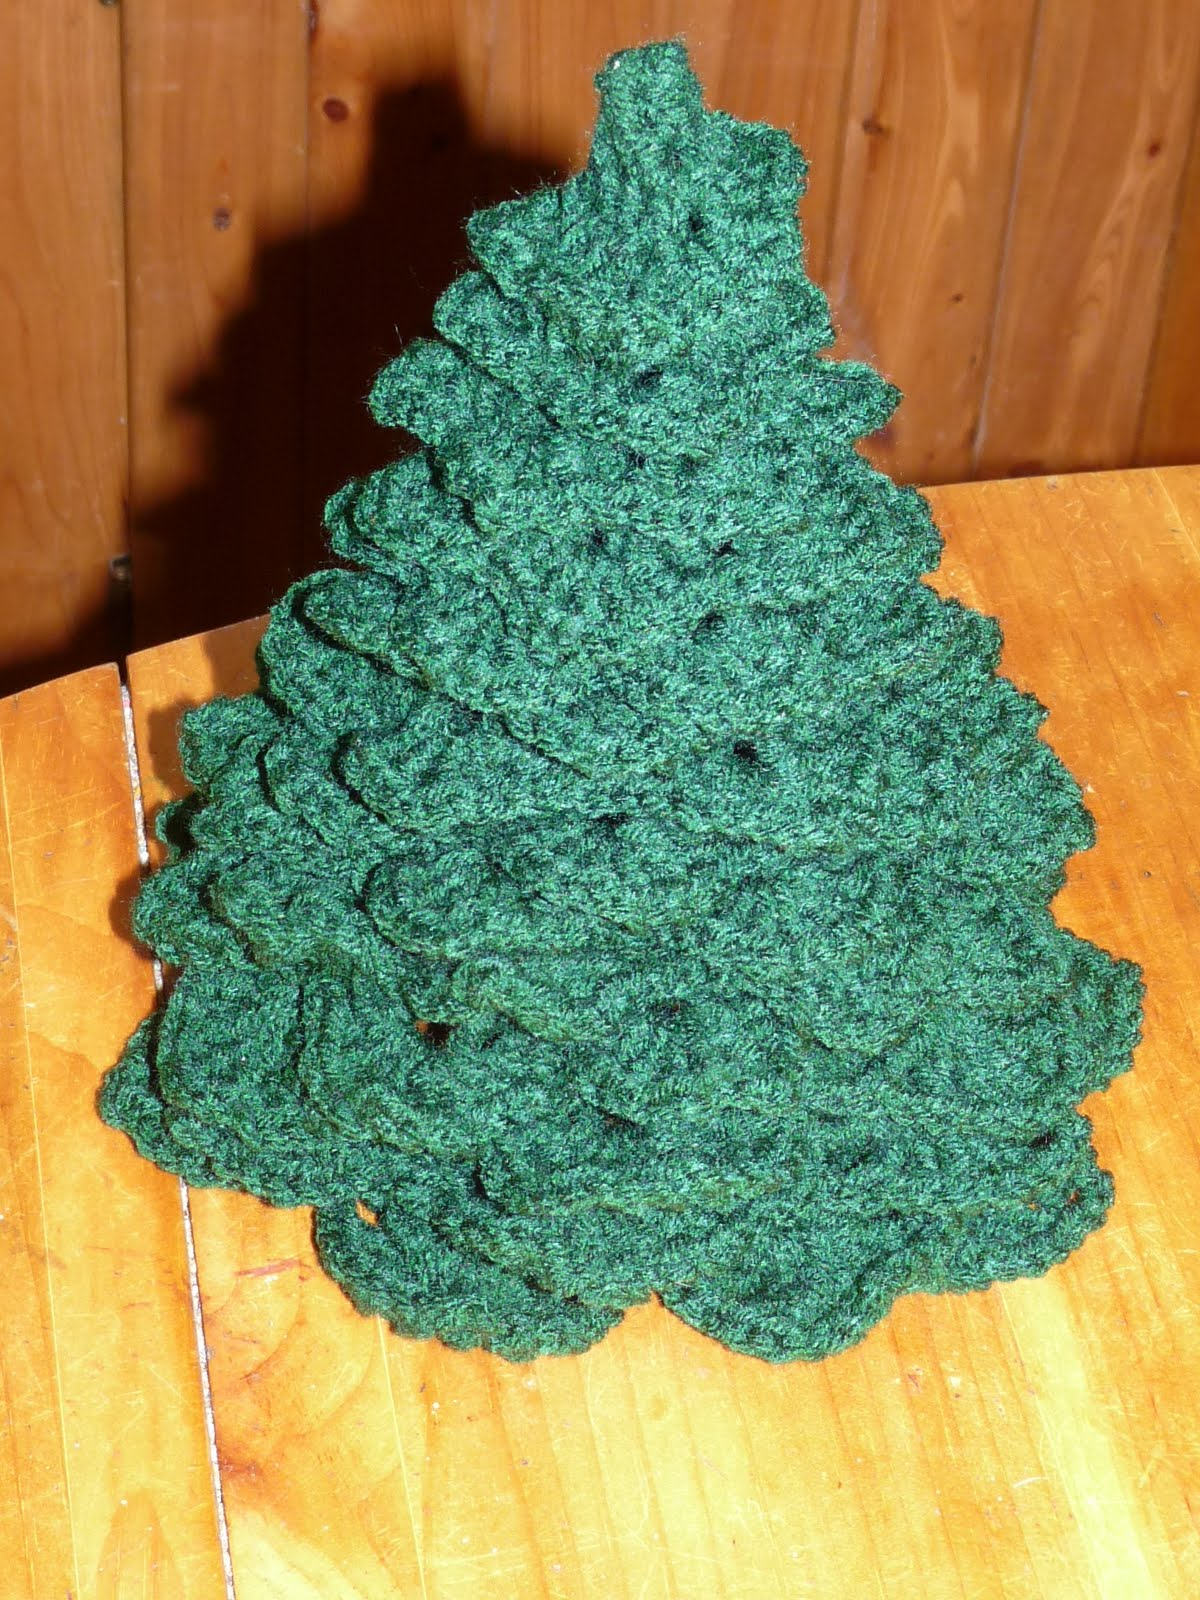 Crochet Pattern For Xmas Tree : Crochet Christmas Tree Pattern: Finished Tree